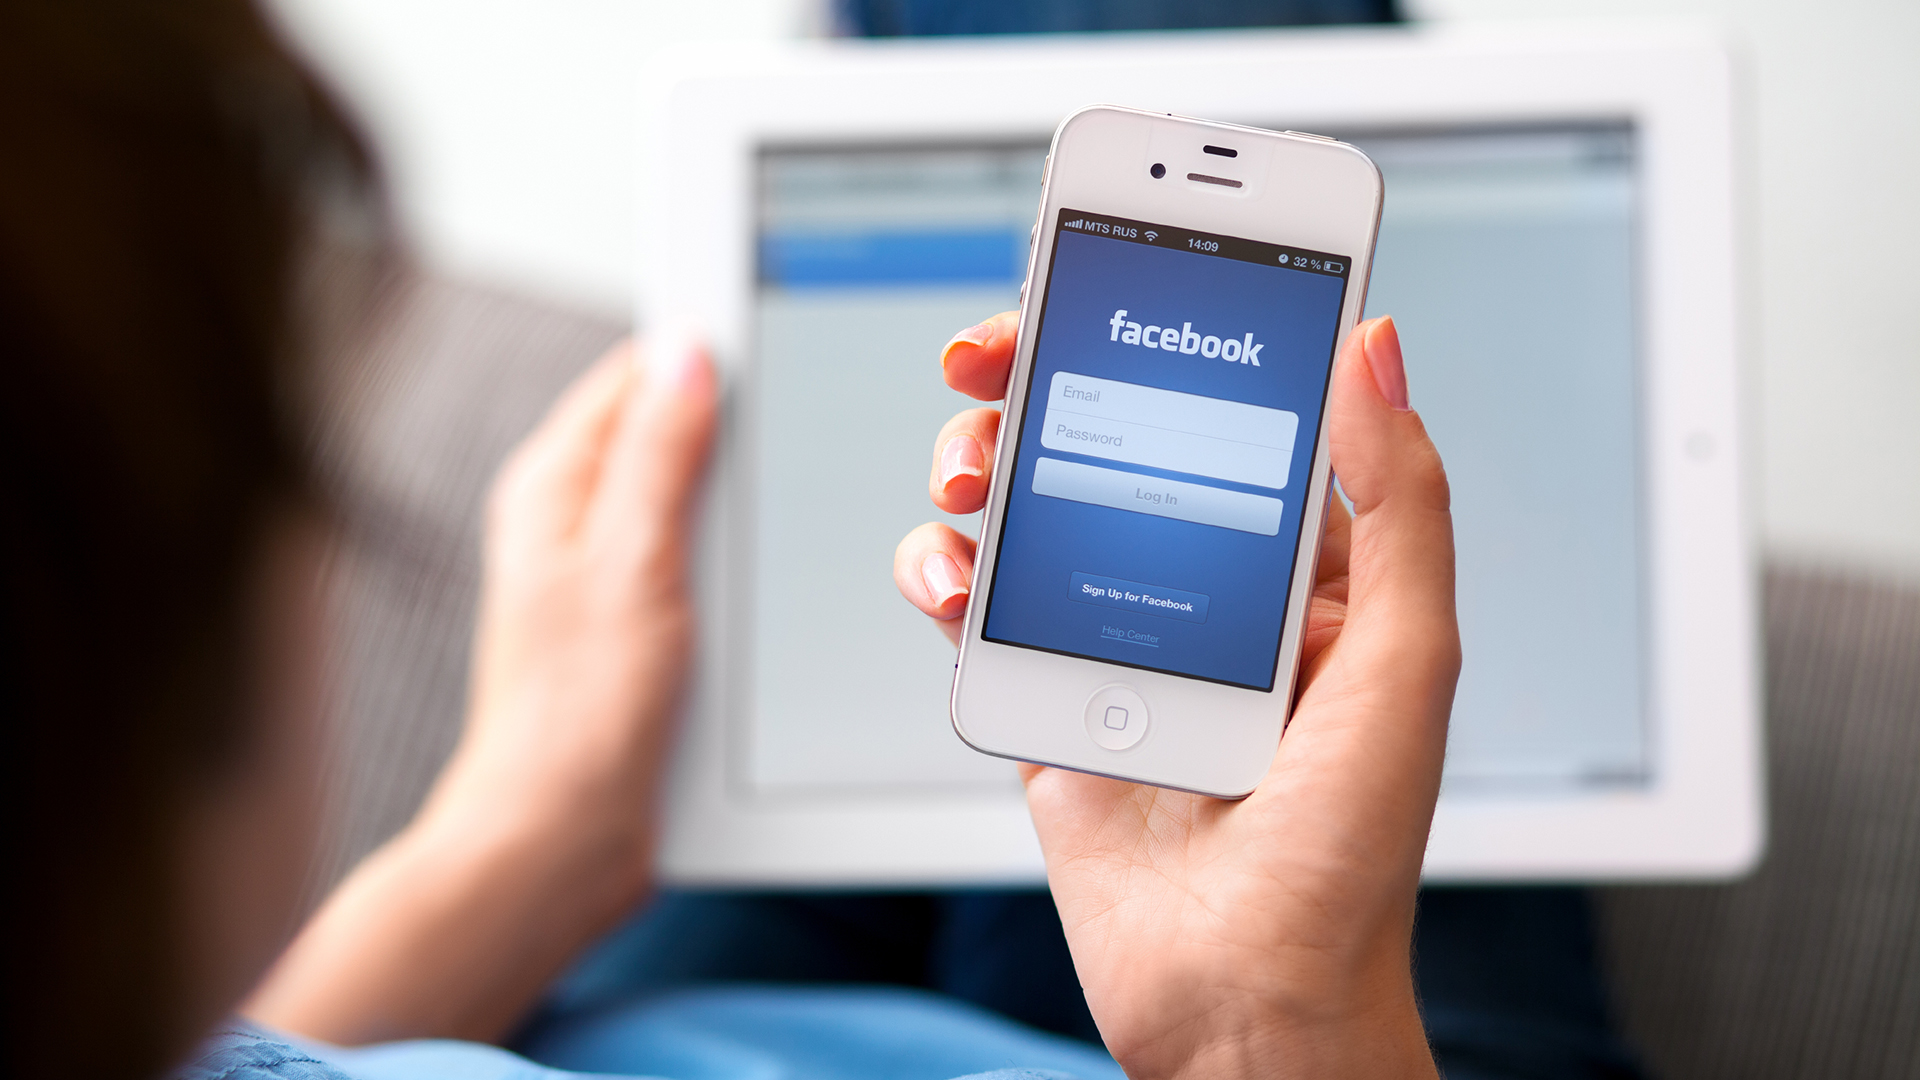 10 acitivites a social media expert should do on Facebook